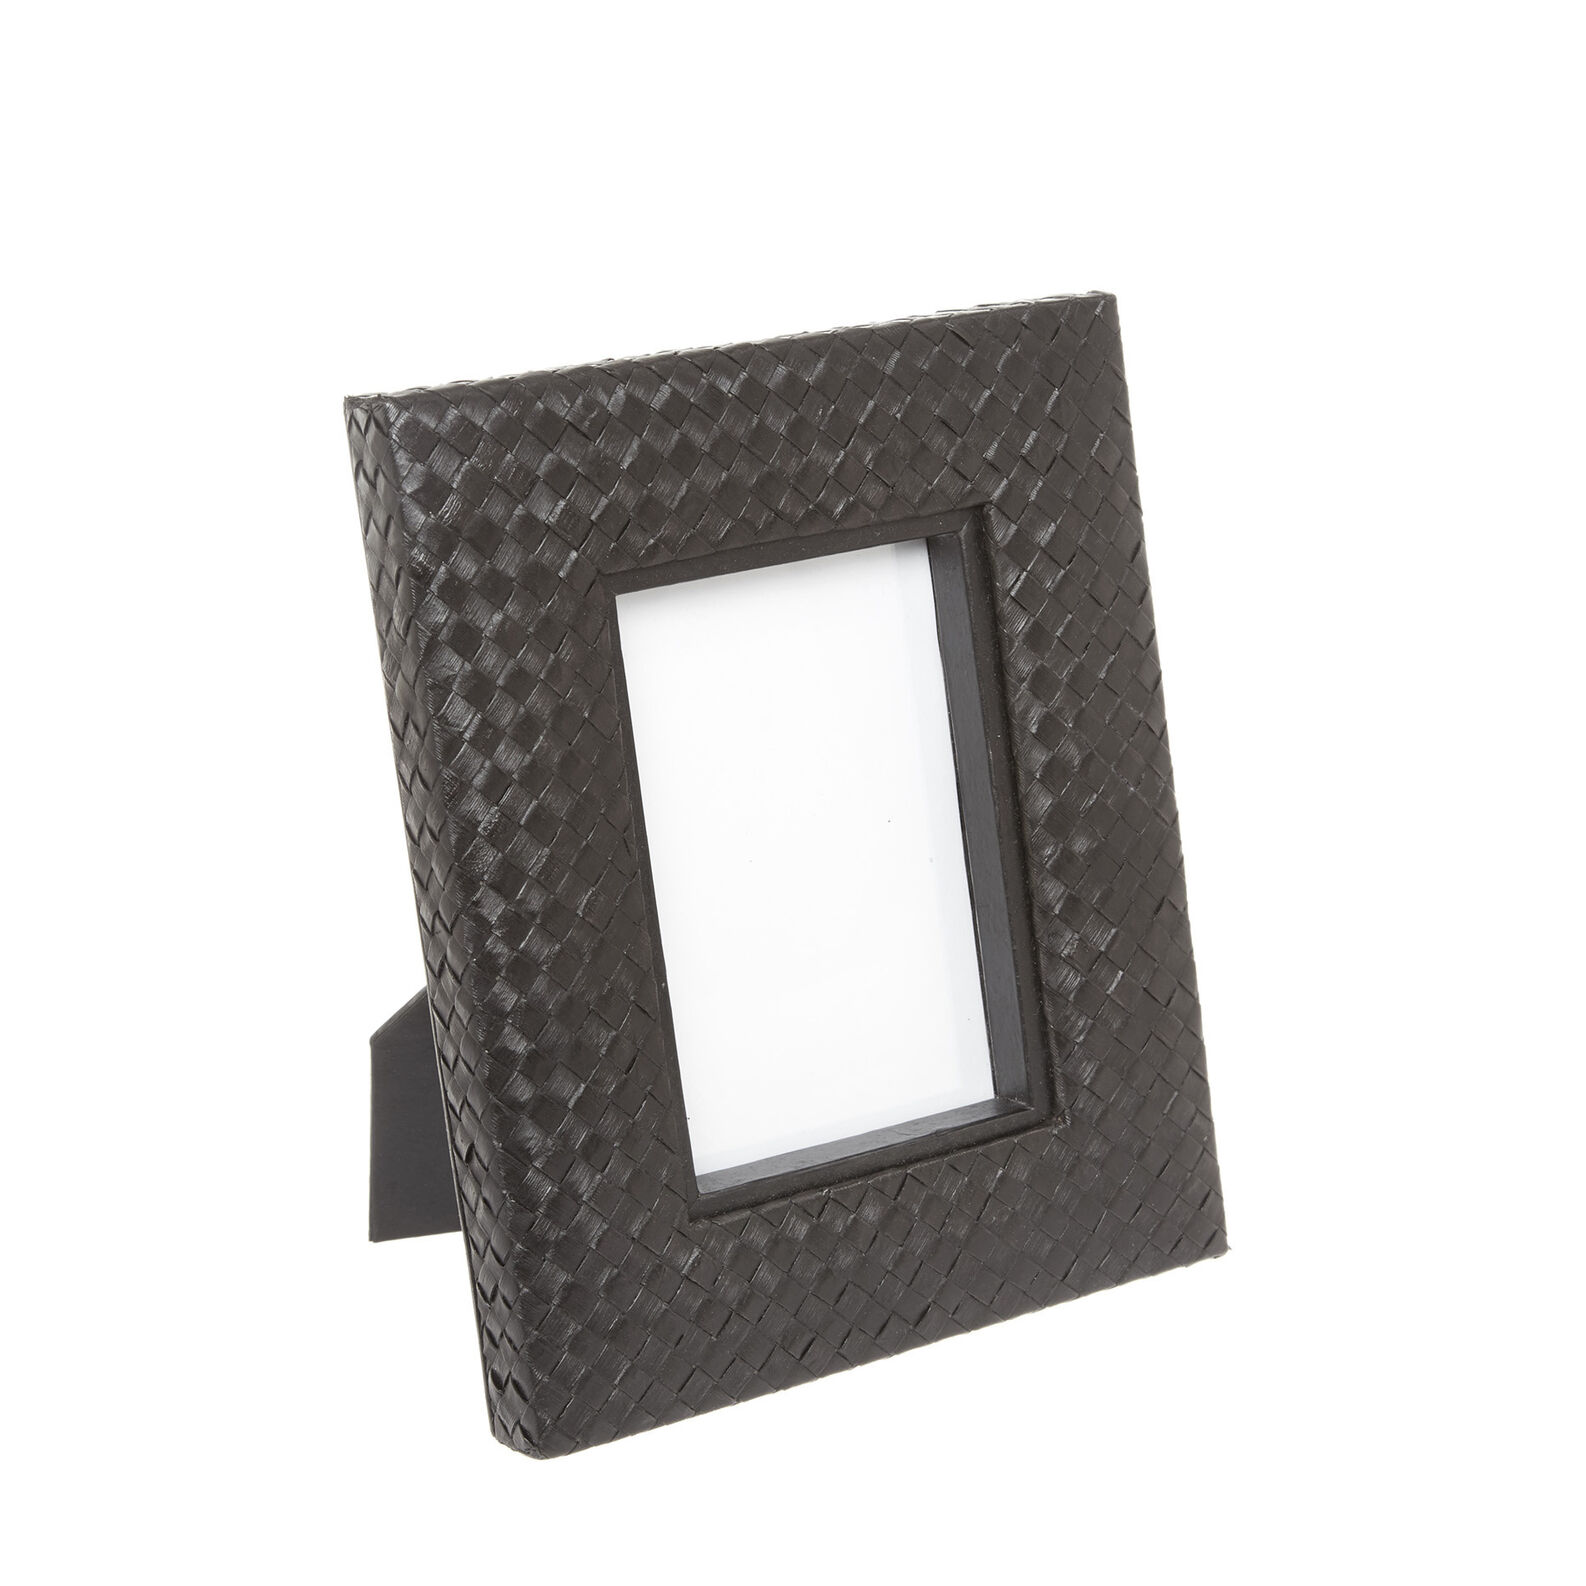 Photo frame with hand-woven leaves